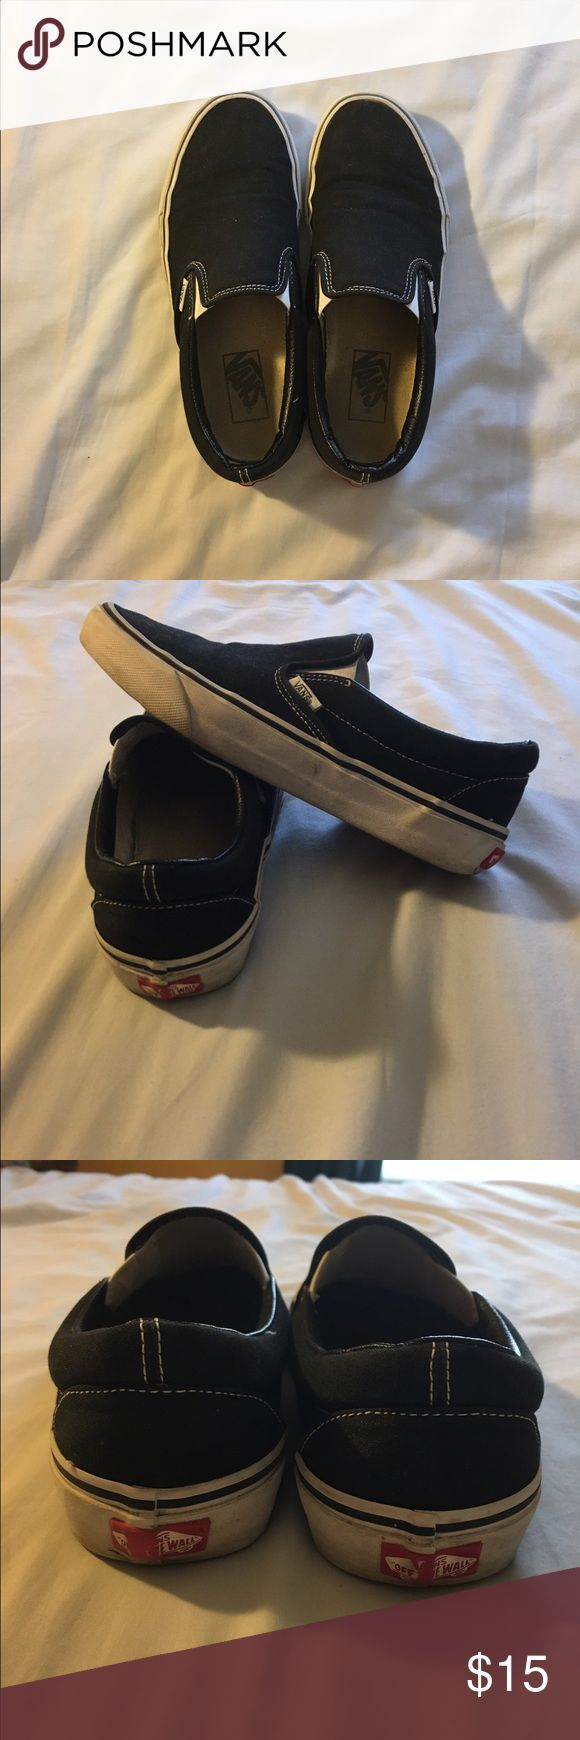 Classic Slip-On Vans Price is firm :) Black slip on Vans, so cute with any outfit. Worn a handful of times but in great condition! Vans Shoes Sneakers